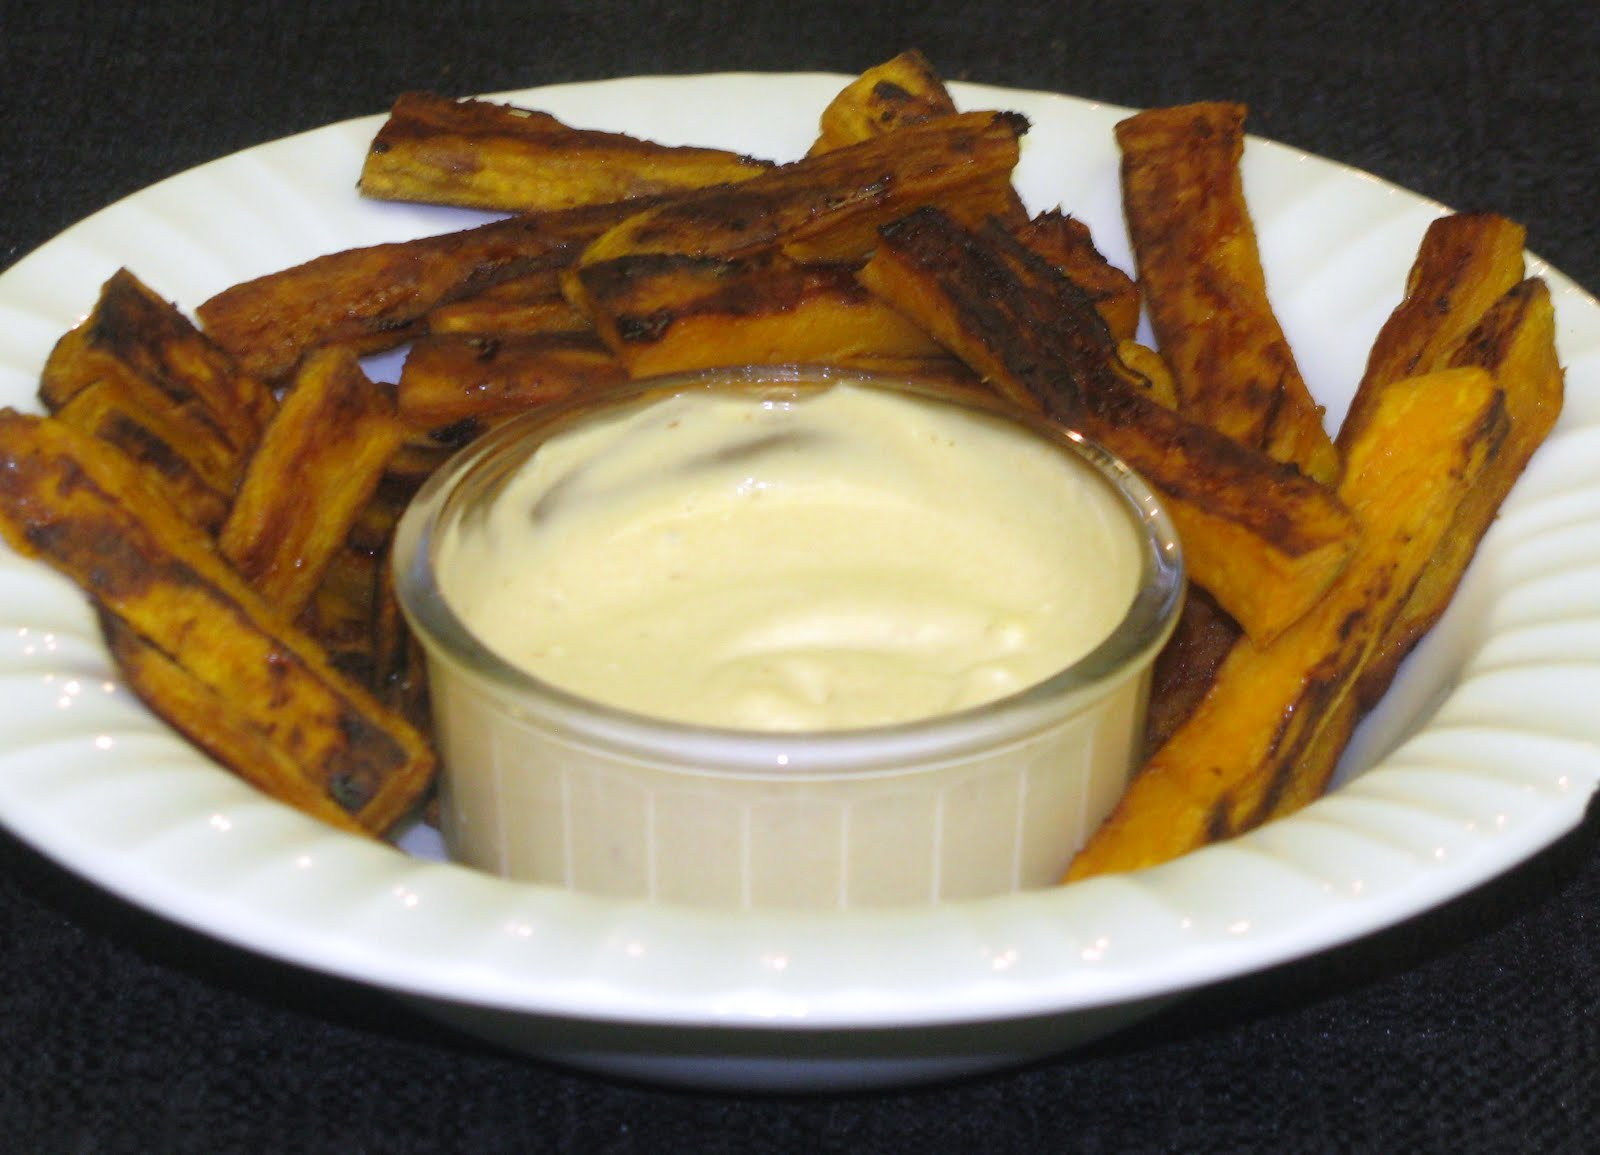 ... and Shenanigans: Sweet Potato Fries with Chipotle Dipping Sauce